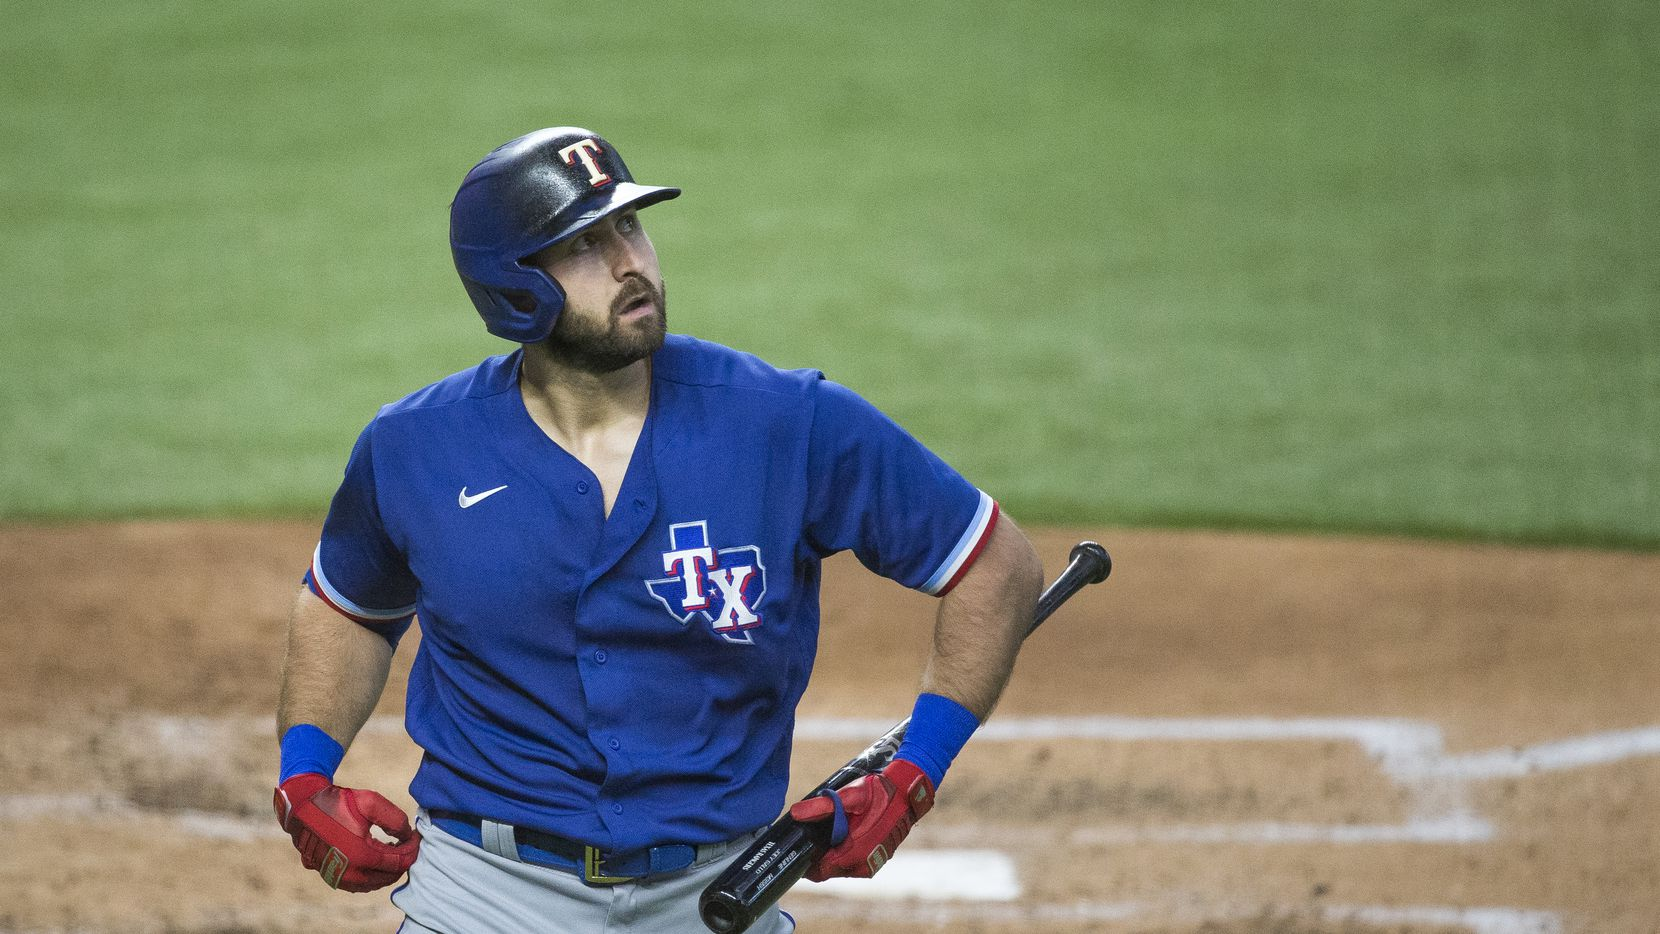 Joey Gallo heads to the dugout after batting during Texas Rangers Summer Camp batting practice on Monday, July 20, 2020 at Globe Life Field in Arlington, Texas.